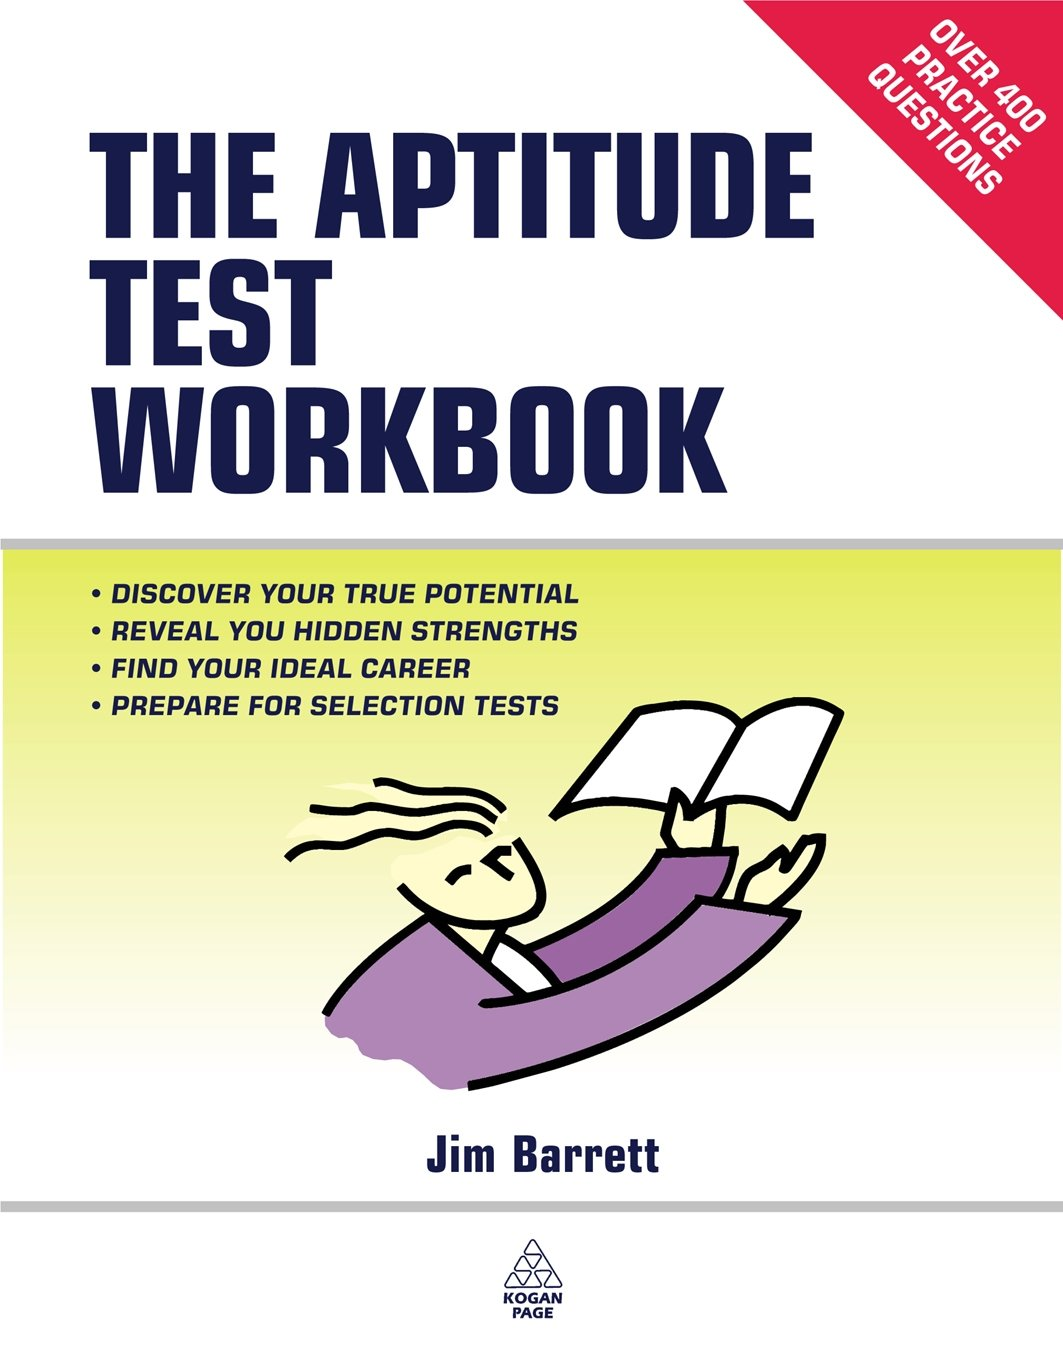 The Aptitude Test Workbook pdf